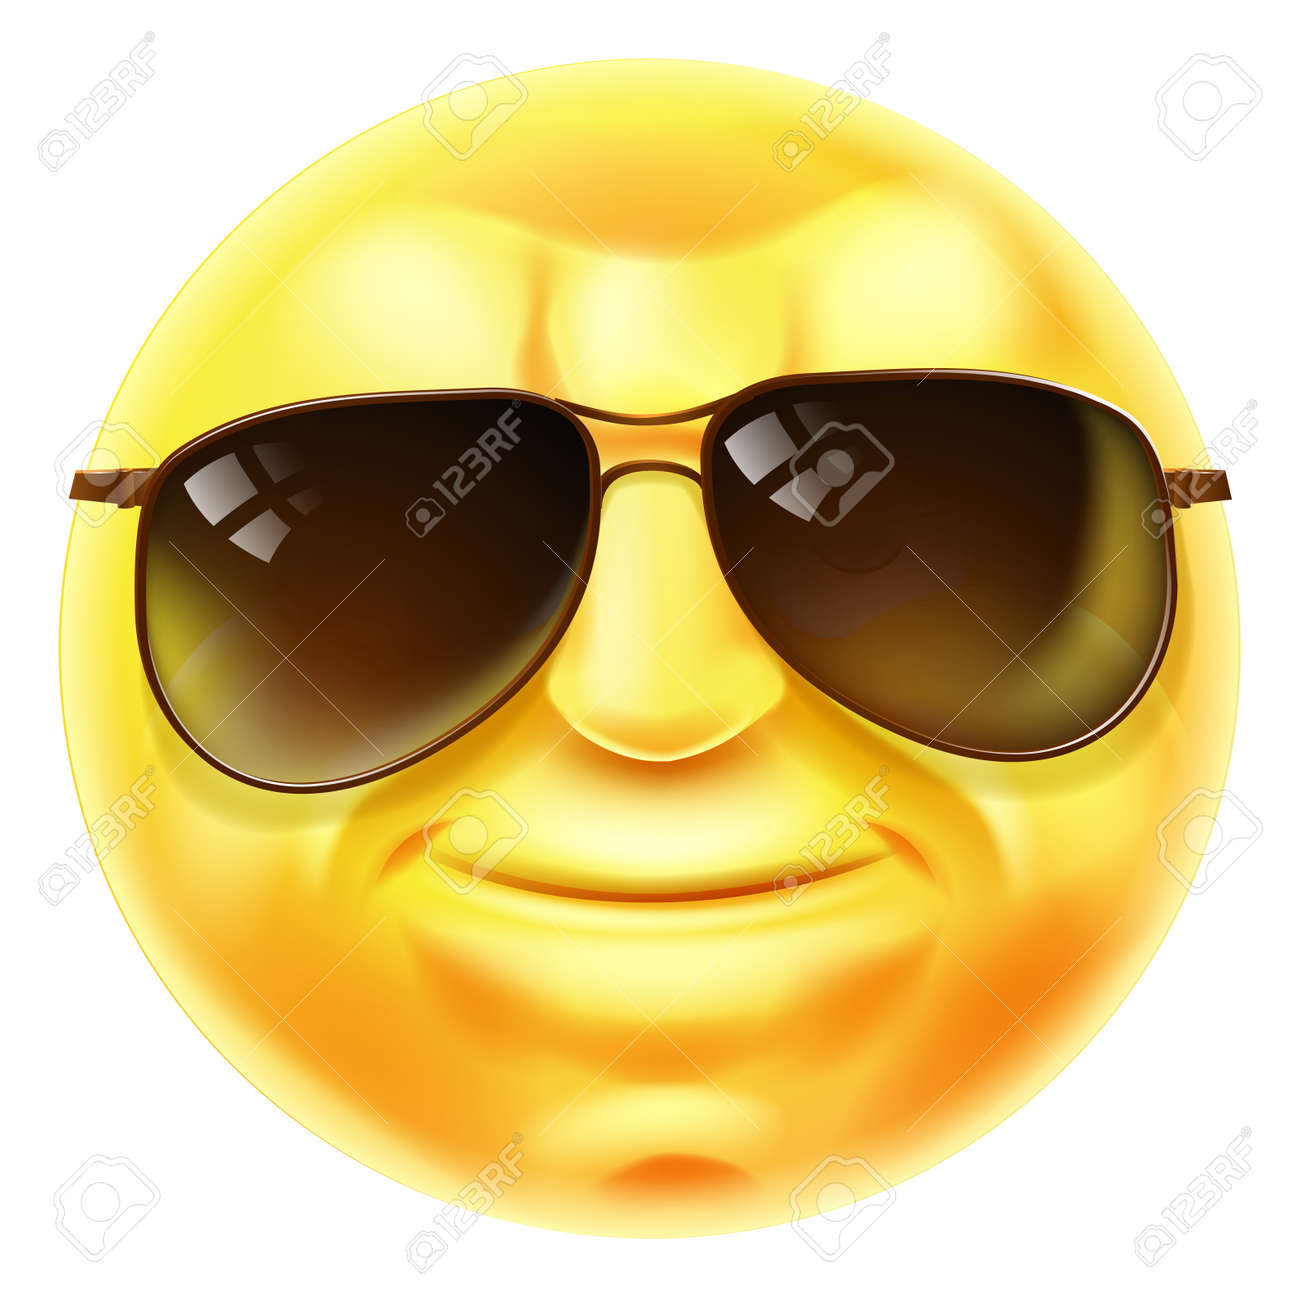 a cool looking emoji emoticon smiley face character with sunglasses